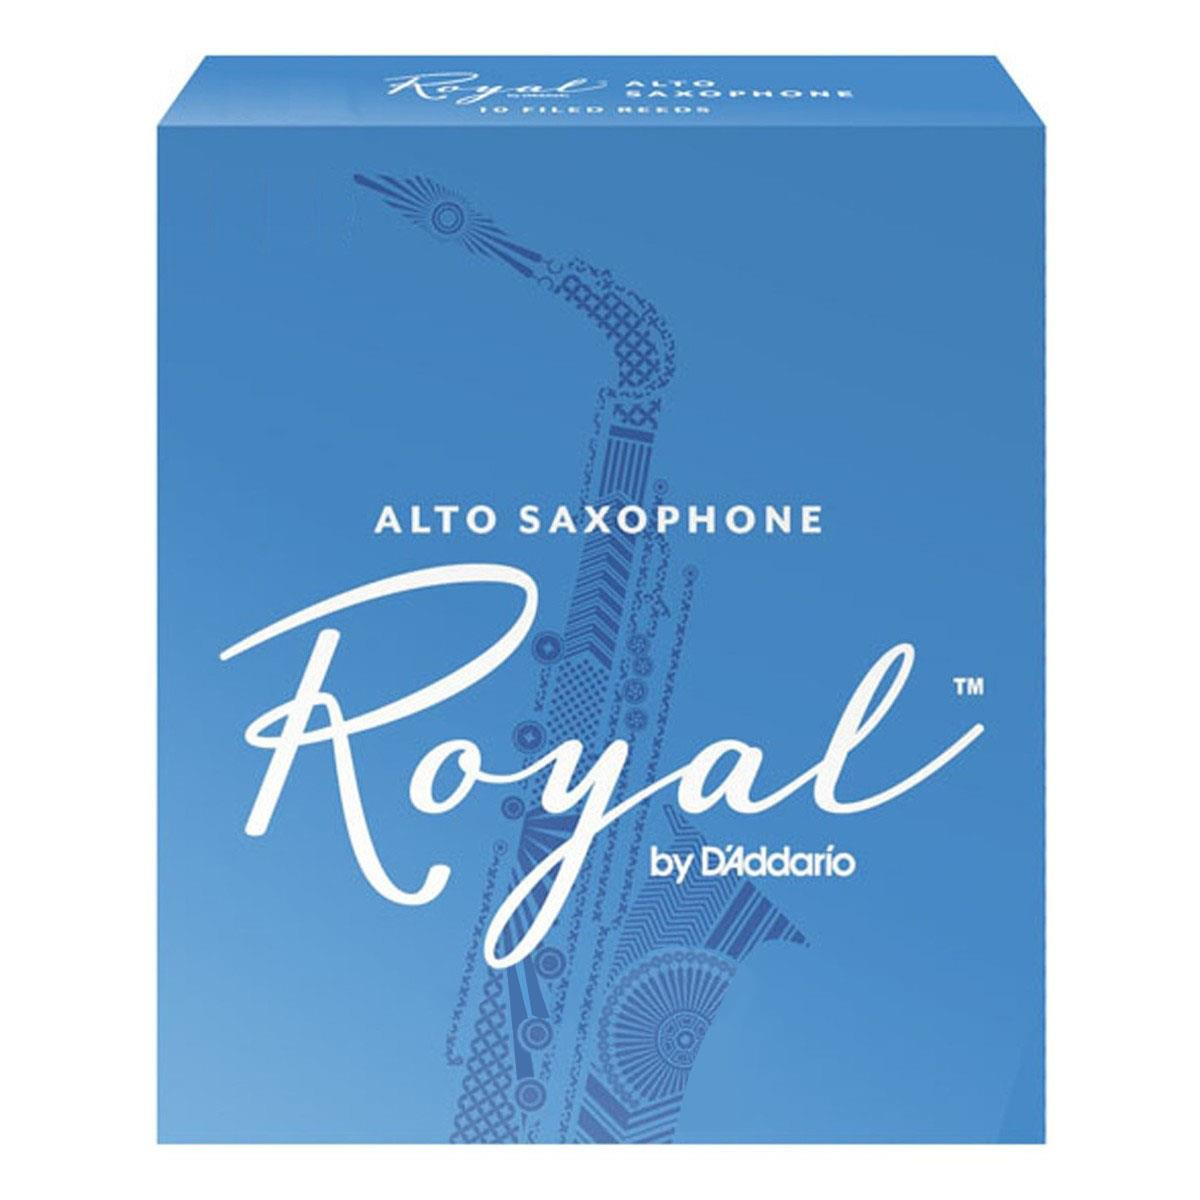 Image of D'Addario Woodwind Royal RJB1035 Alto Sax Reeds Strength 3.5 10-pack 0046716532985